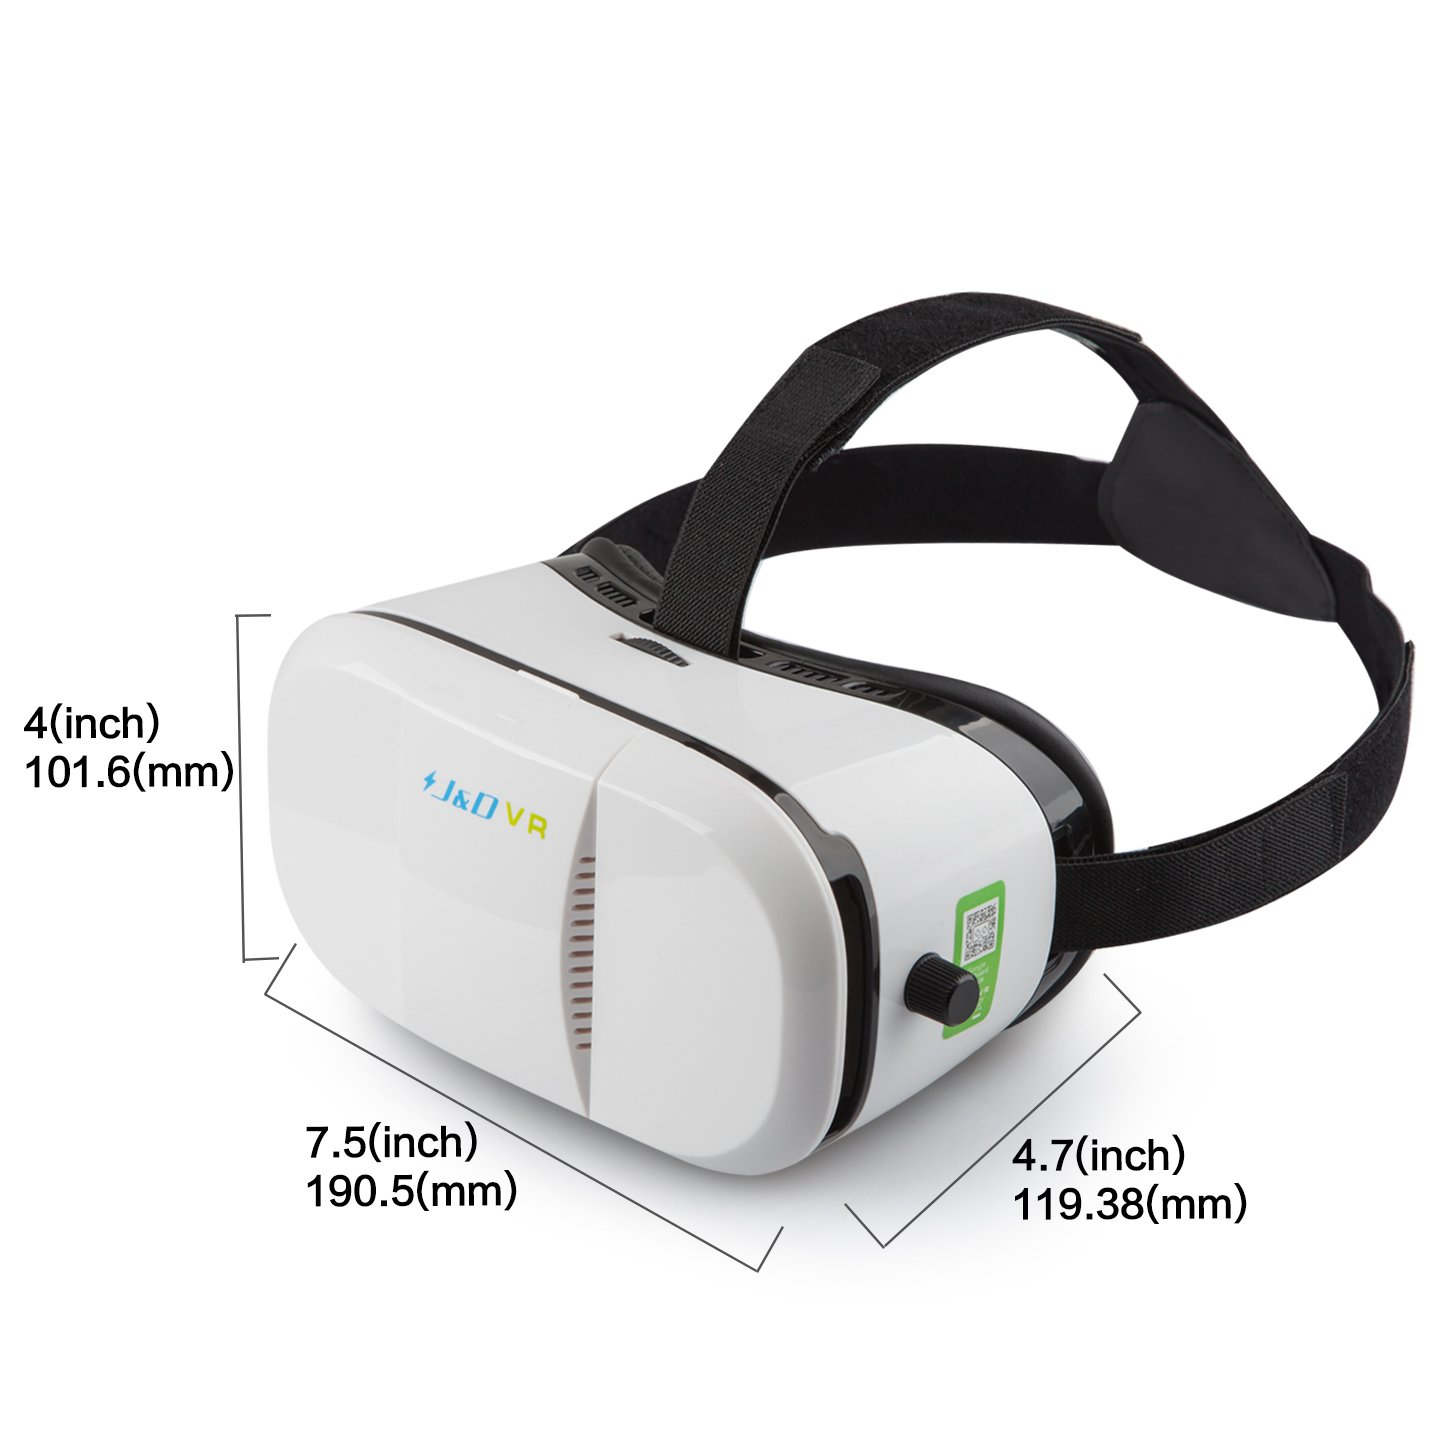 0be12356c Amazon.com: 3D VR Headset, J&D 3D Virtual Reality Headset (Focal and Pupil  Distance Adjustable Headset for iPhone Samsung Moto LG Nexus HTC,  Black/White): ...